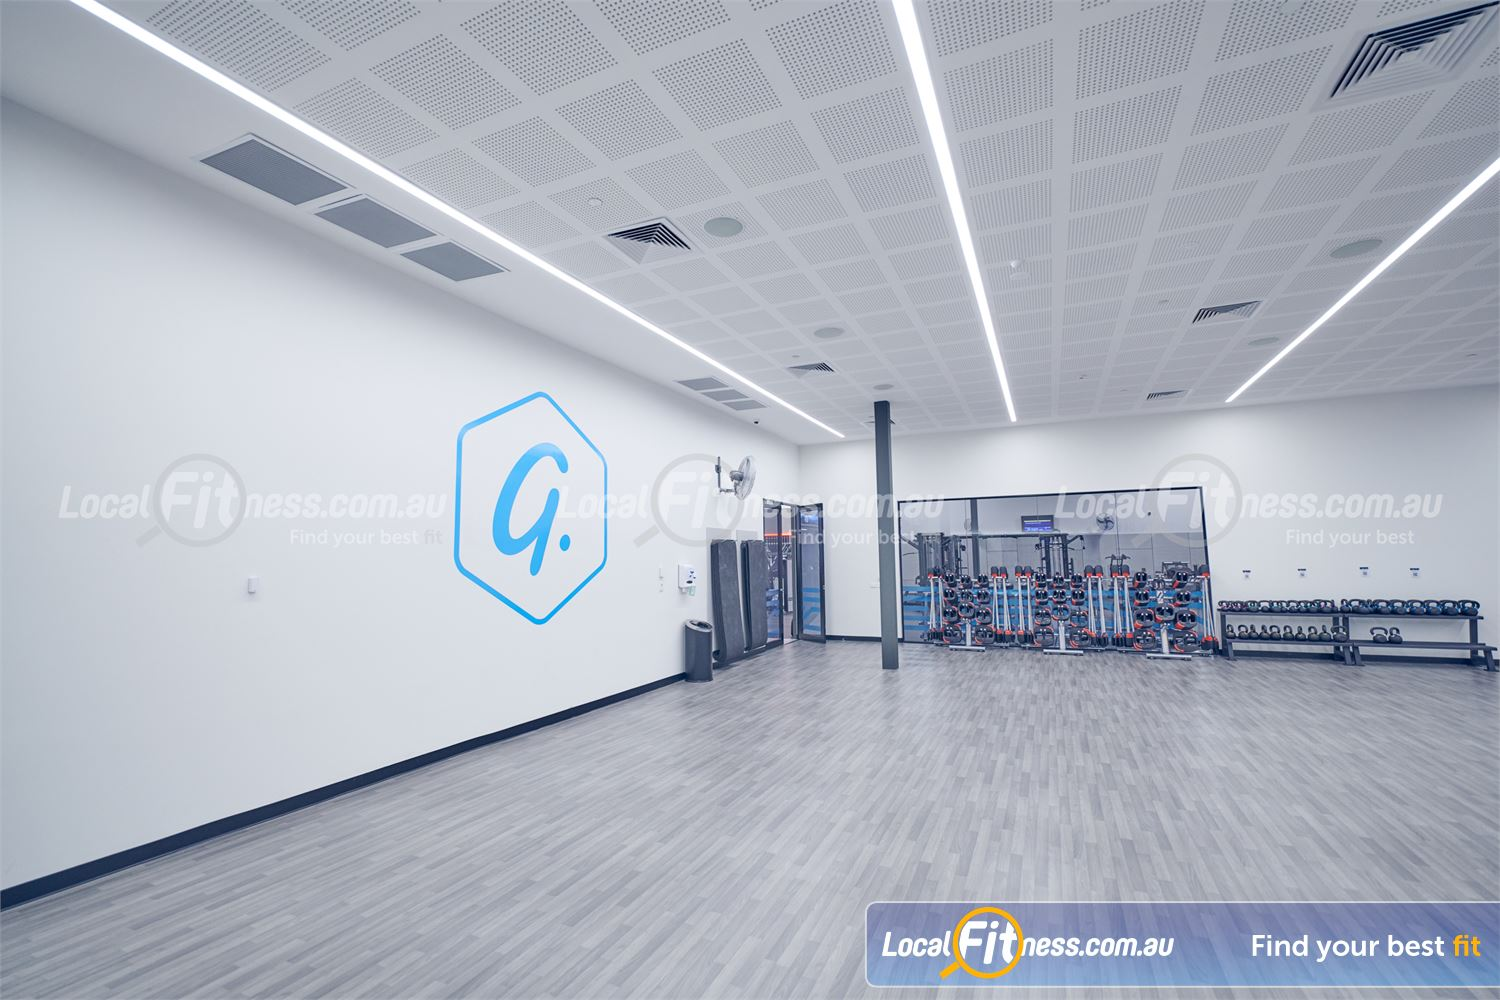 Goodlife Health Clubs Ringwood Goodlife Ringwood will have a dedicated group fitness studio.